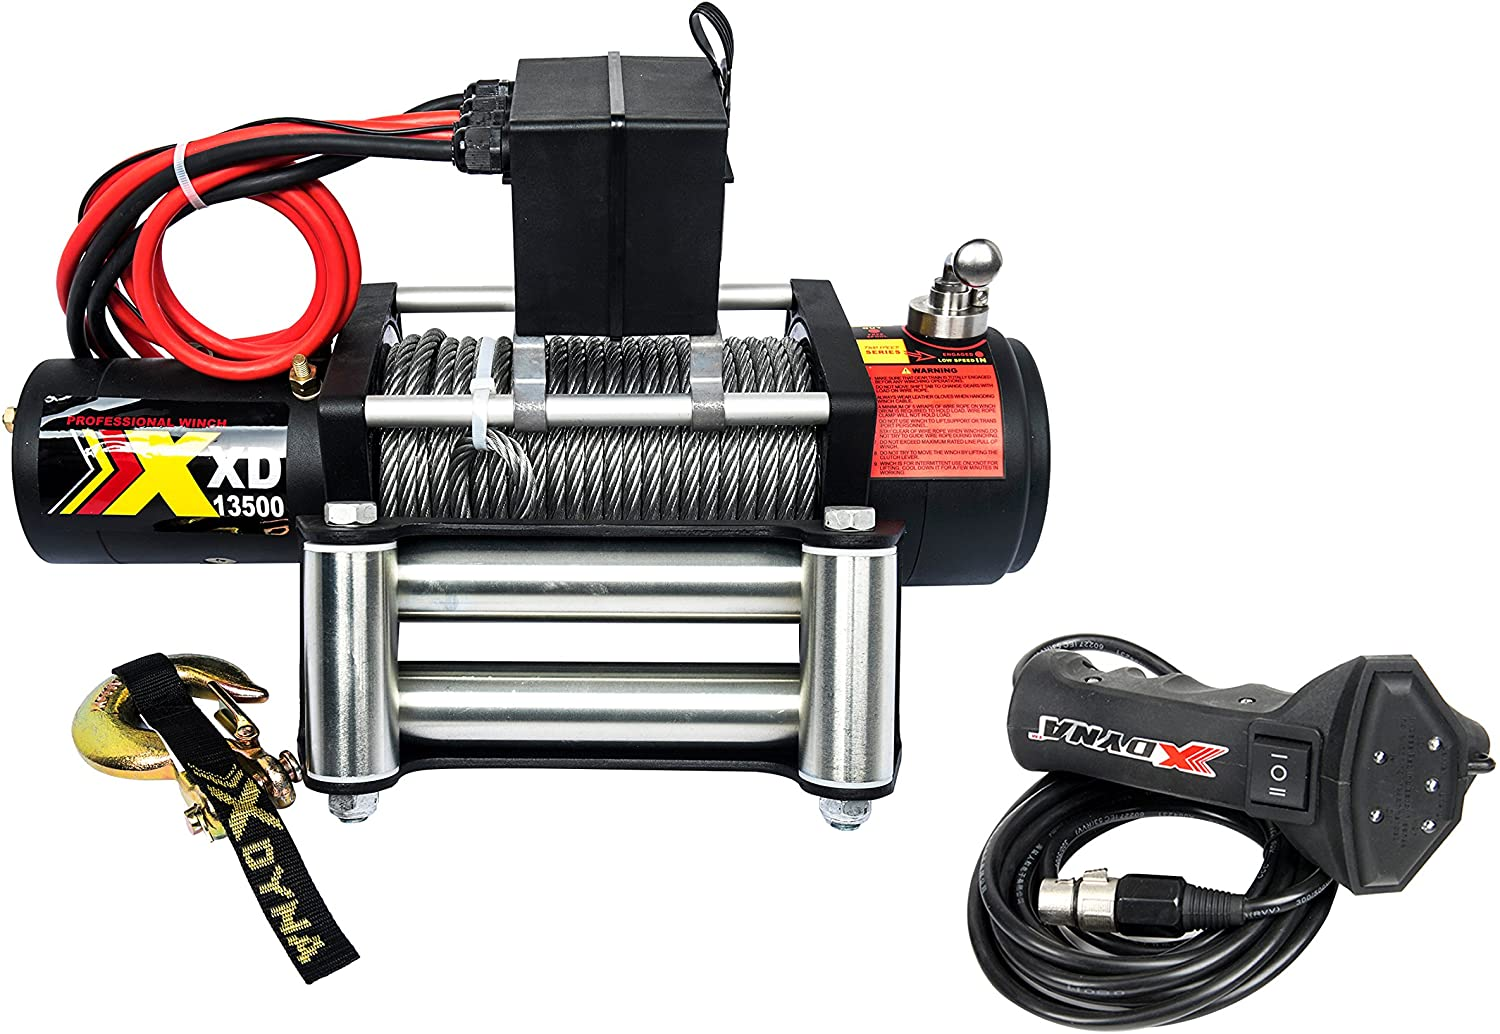 13500lbs 12 V Waterproof Winch with Adjust Torque Limited Protector, Intelligent Remote Handle Showing Load Red Warning,100% Engaged Stainless Clutch, Wire Cable, Used to SUV Track